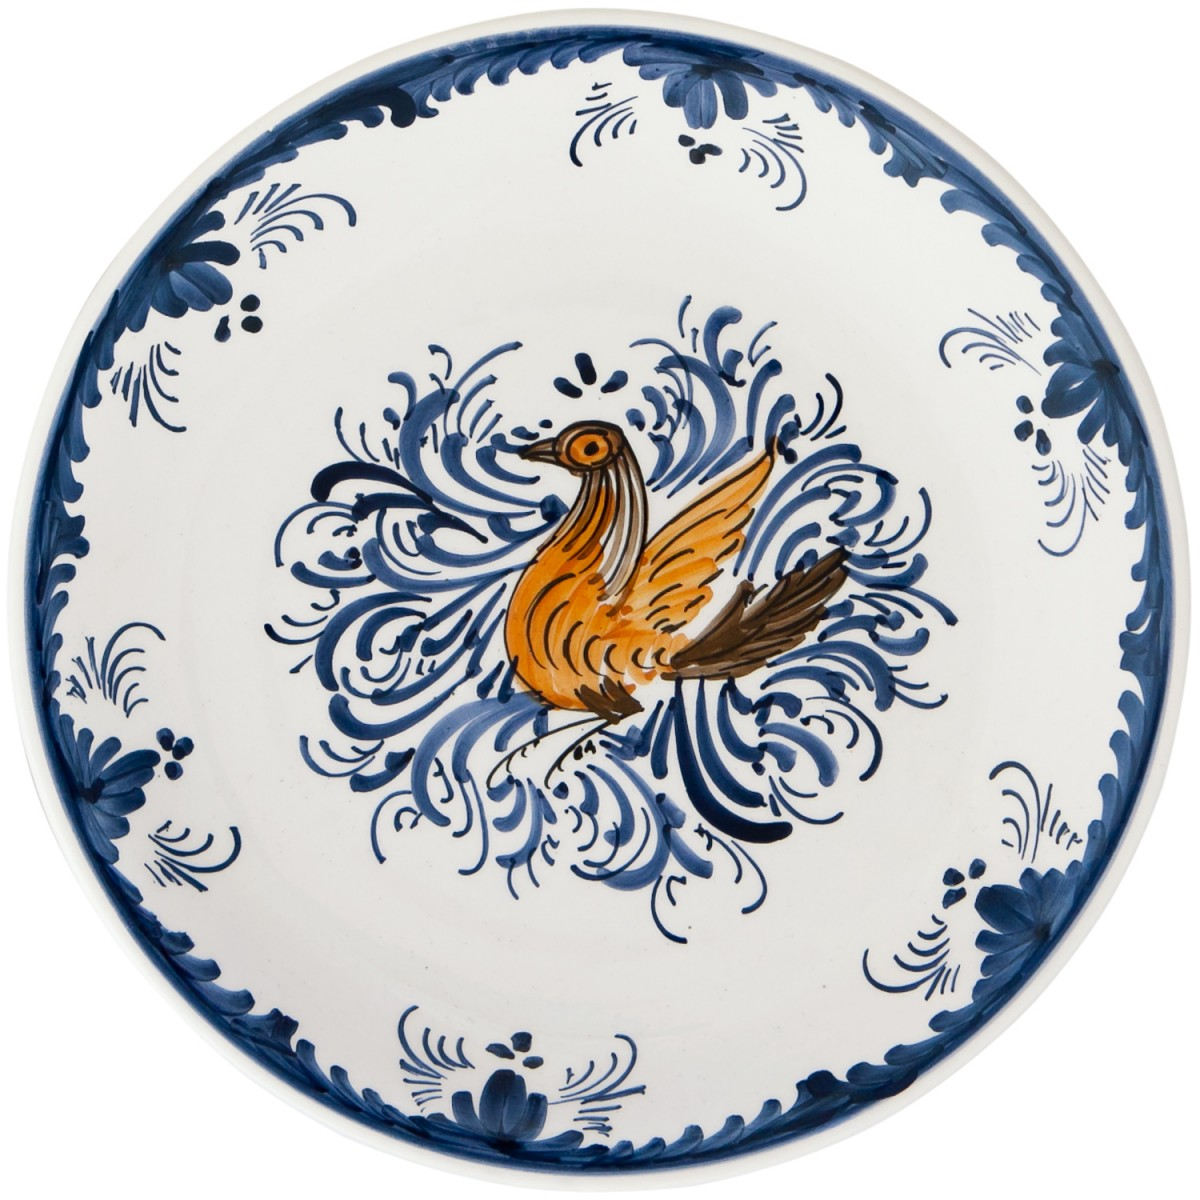 Hand_Painted_Ceramic_Dinner_Decorative_Plates-Eclectic_Bird-Blue-White-1